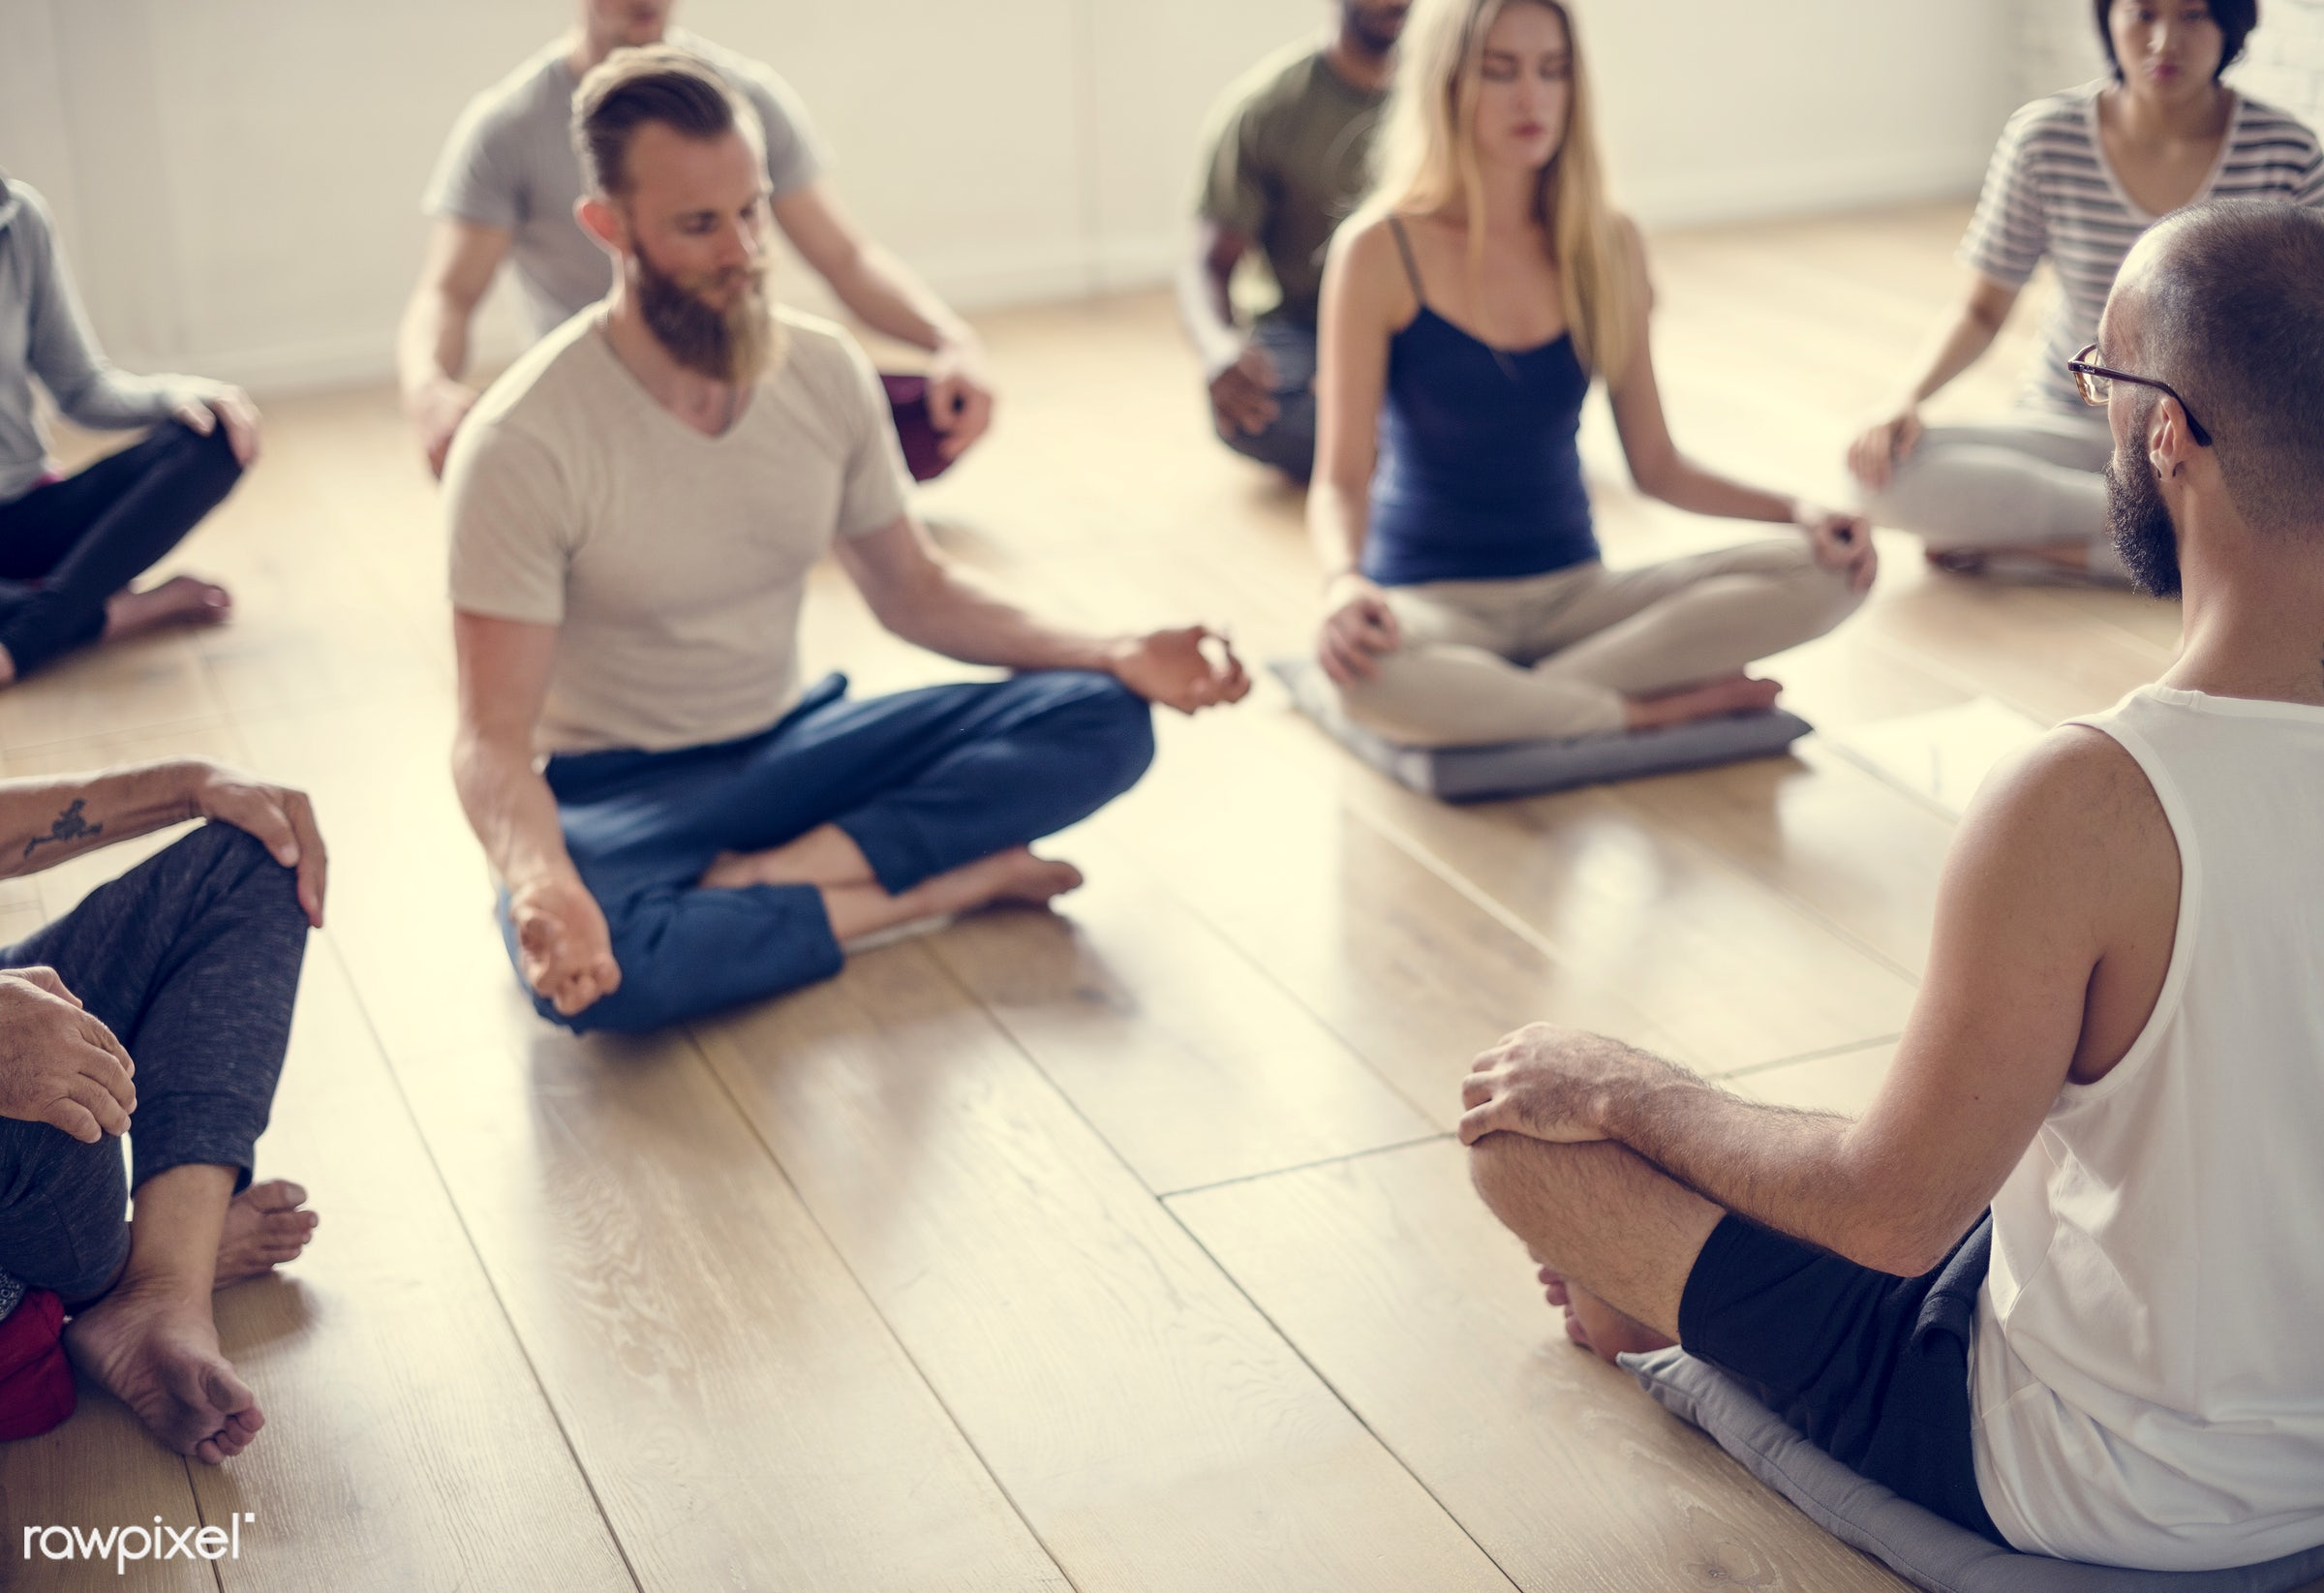 respiration, physical, diverse, recreation, people, stretching, together, balance, practicing, lifestyle, flexibility,...